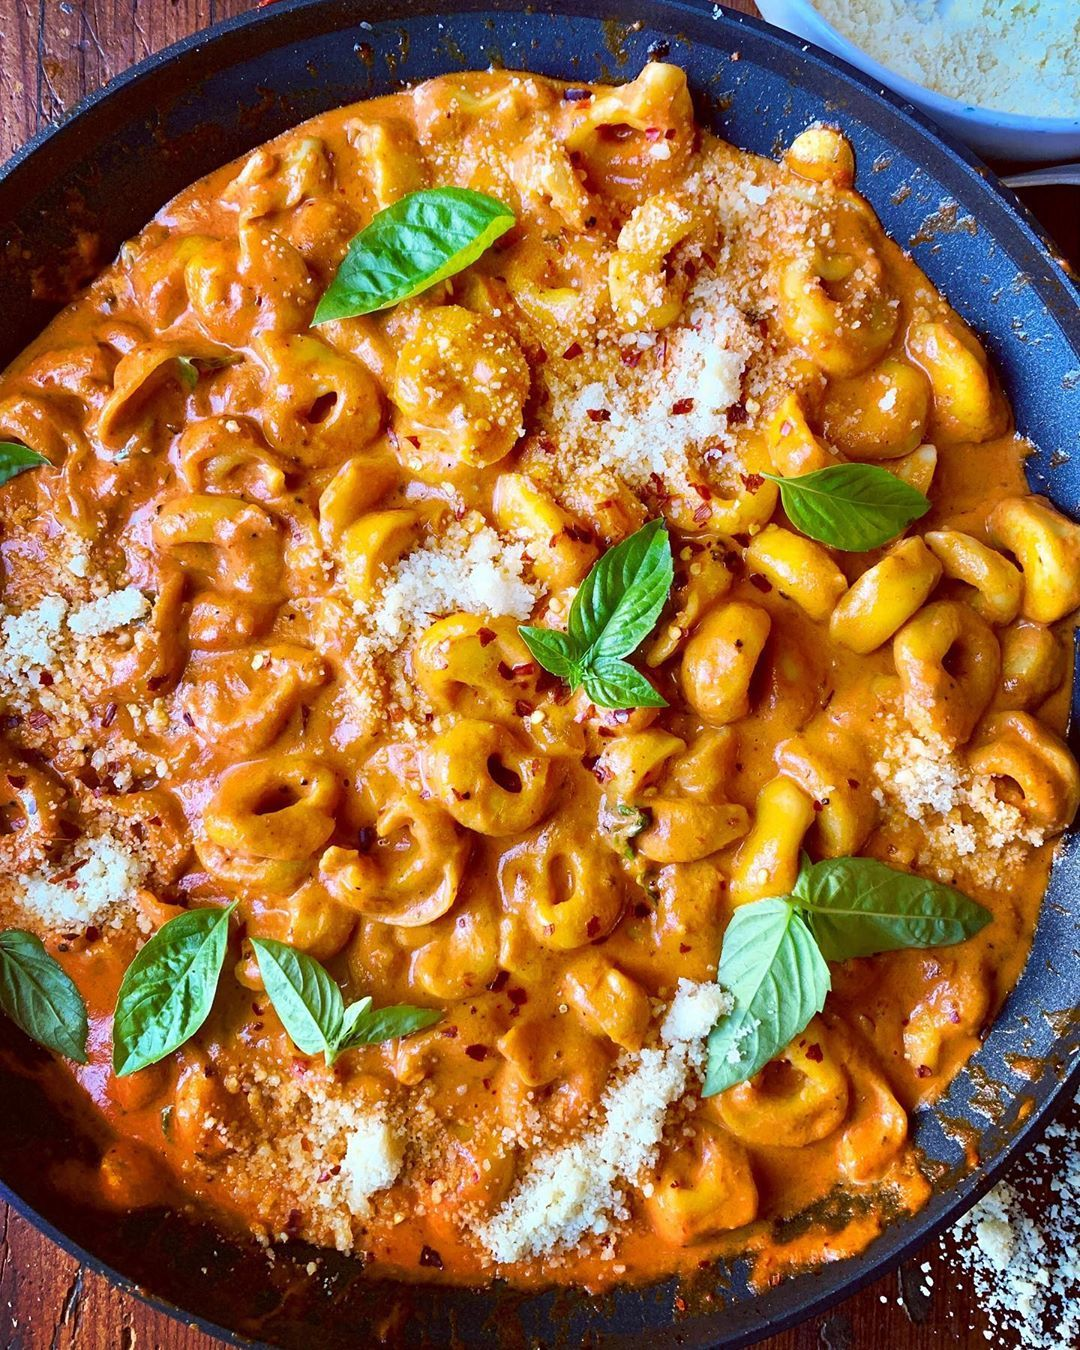 Diane Morrisey On Instagram Pasta Dinner Italian Group Therapy And Please Sign Me Up For The Therapy Session That Vodka Sauce Dinner Vegetarian Recipes